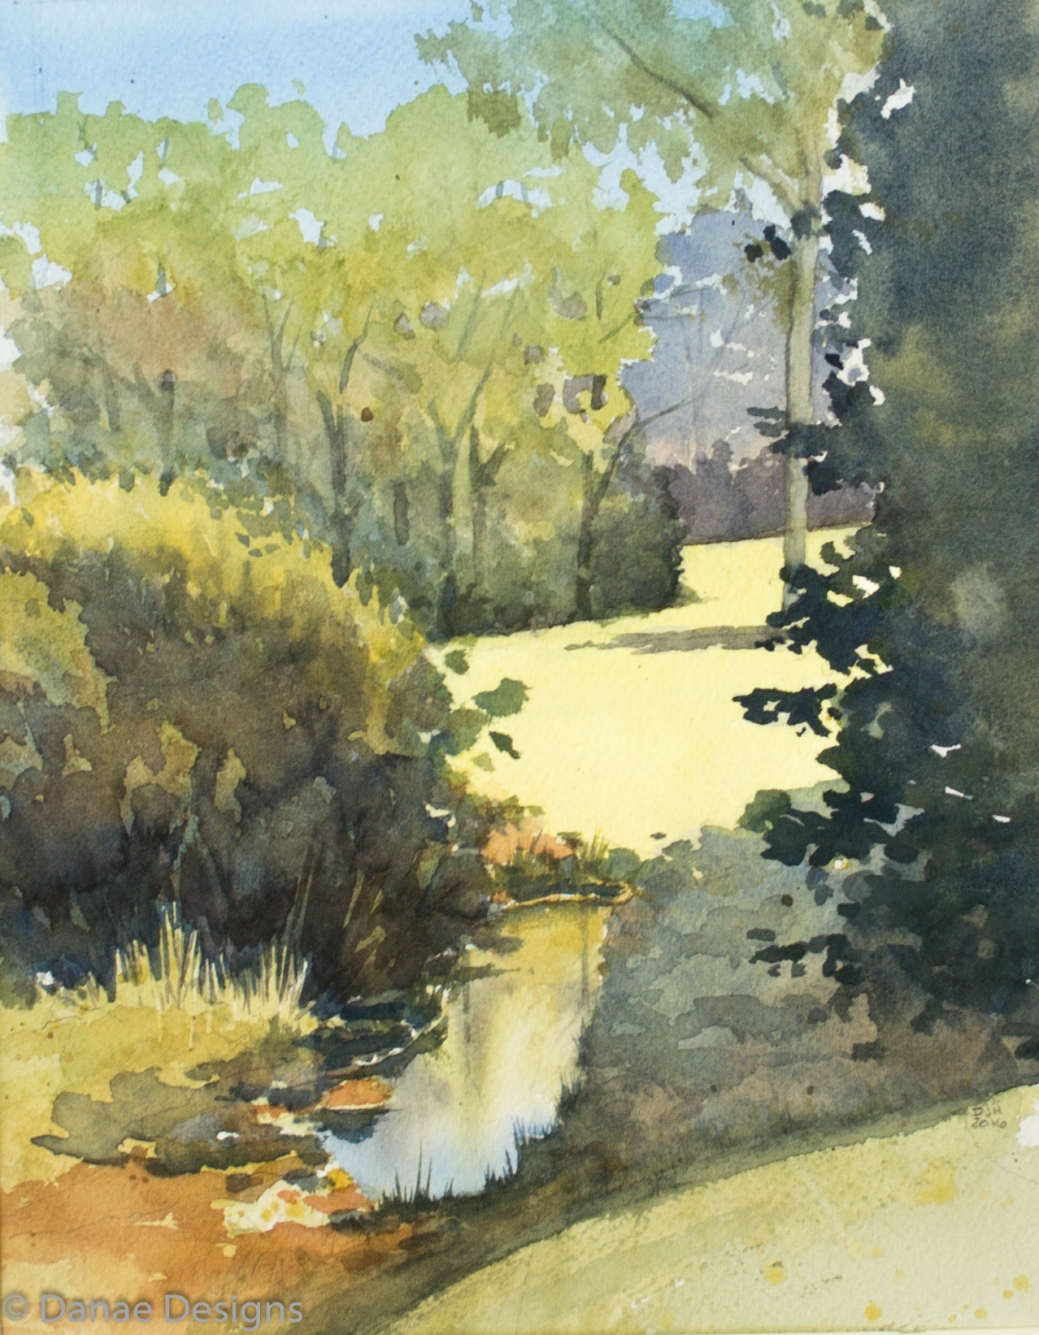 danae-designs-plein-air-watercolor-augusta-plein-air-festival-new-melle